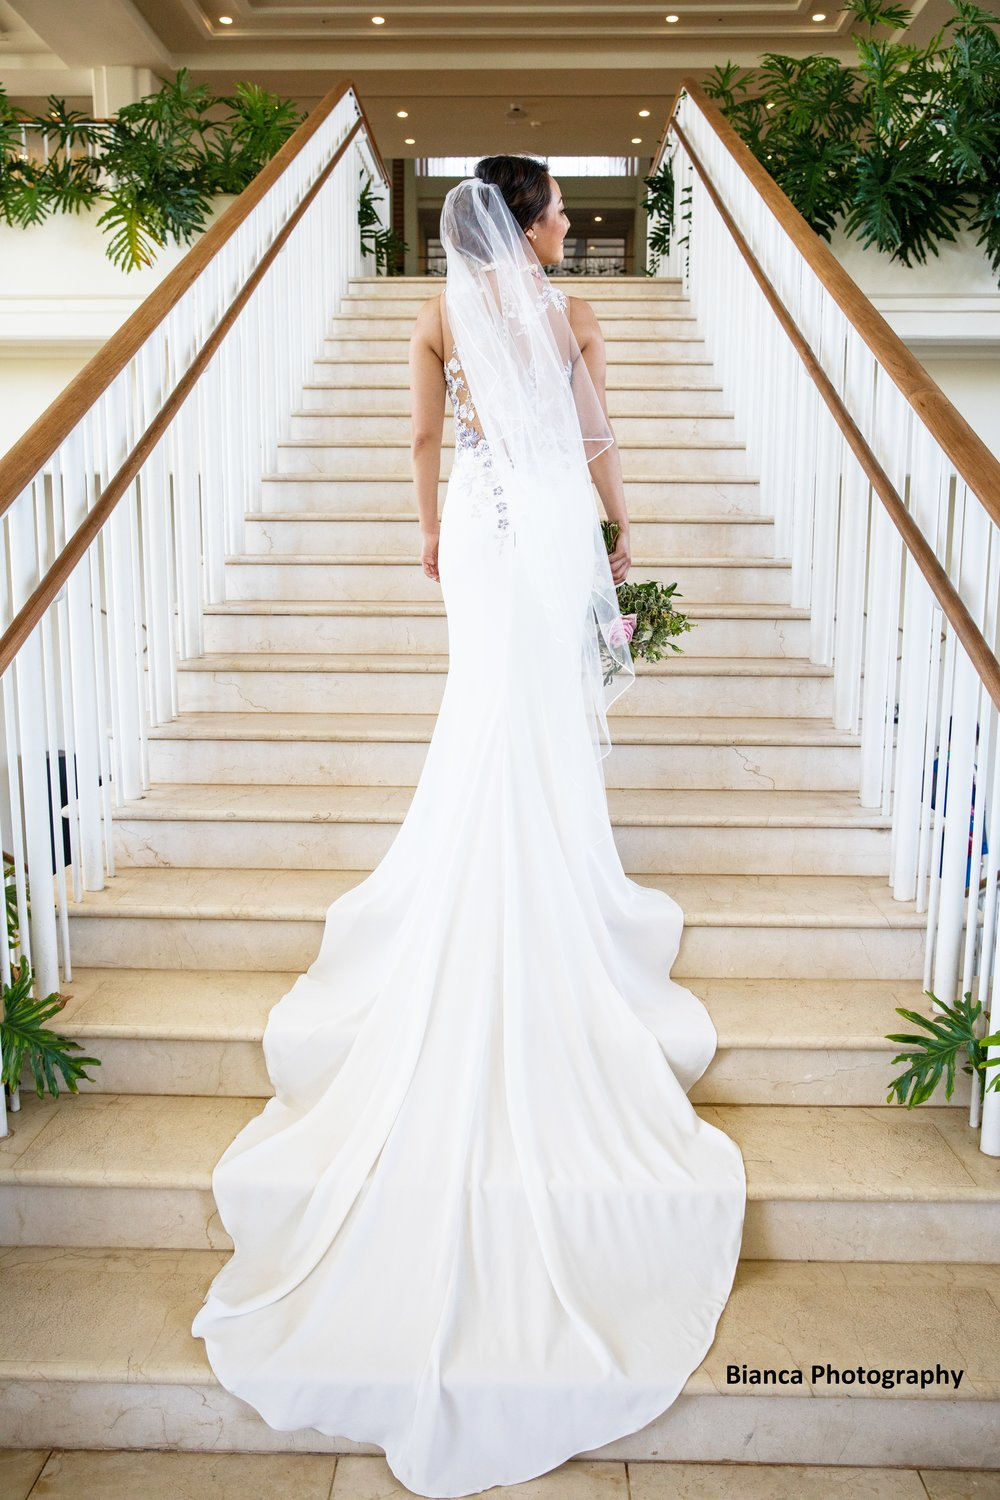 W_0563 (Bianca Photography).jpg